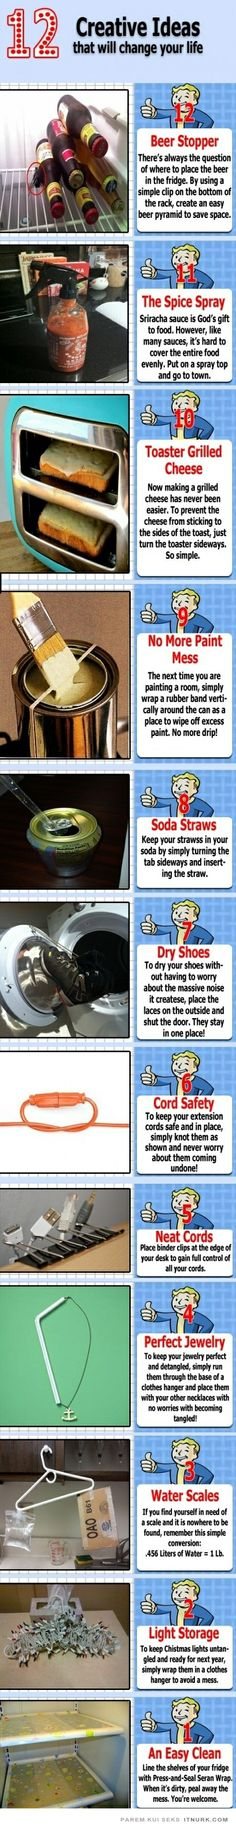 12 creative ideas that will change your life